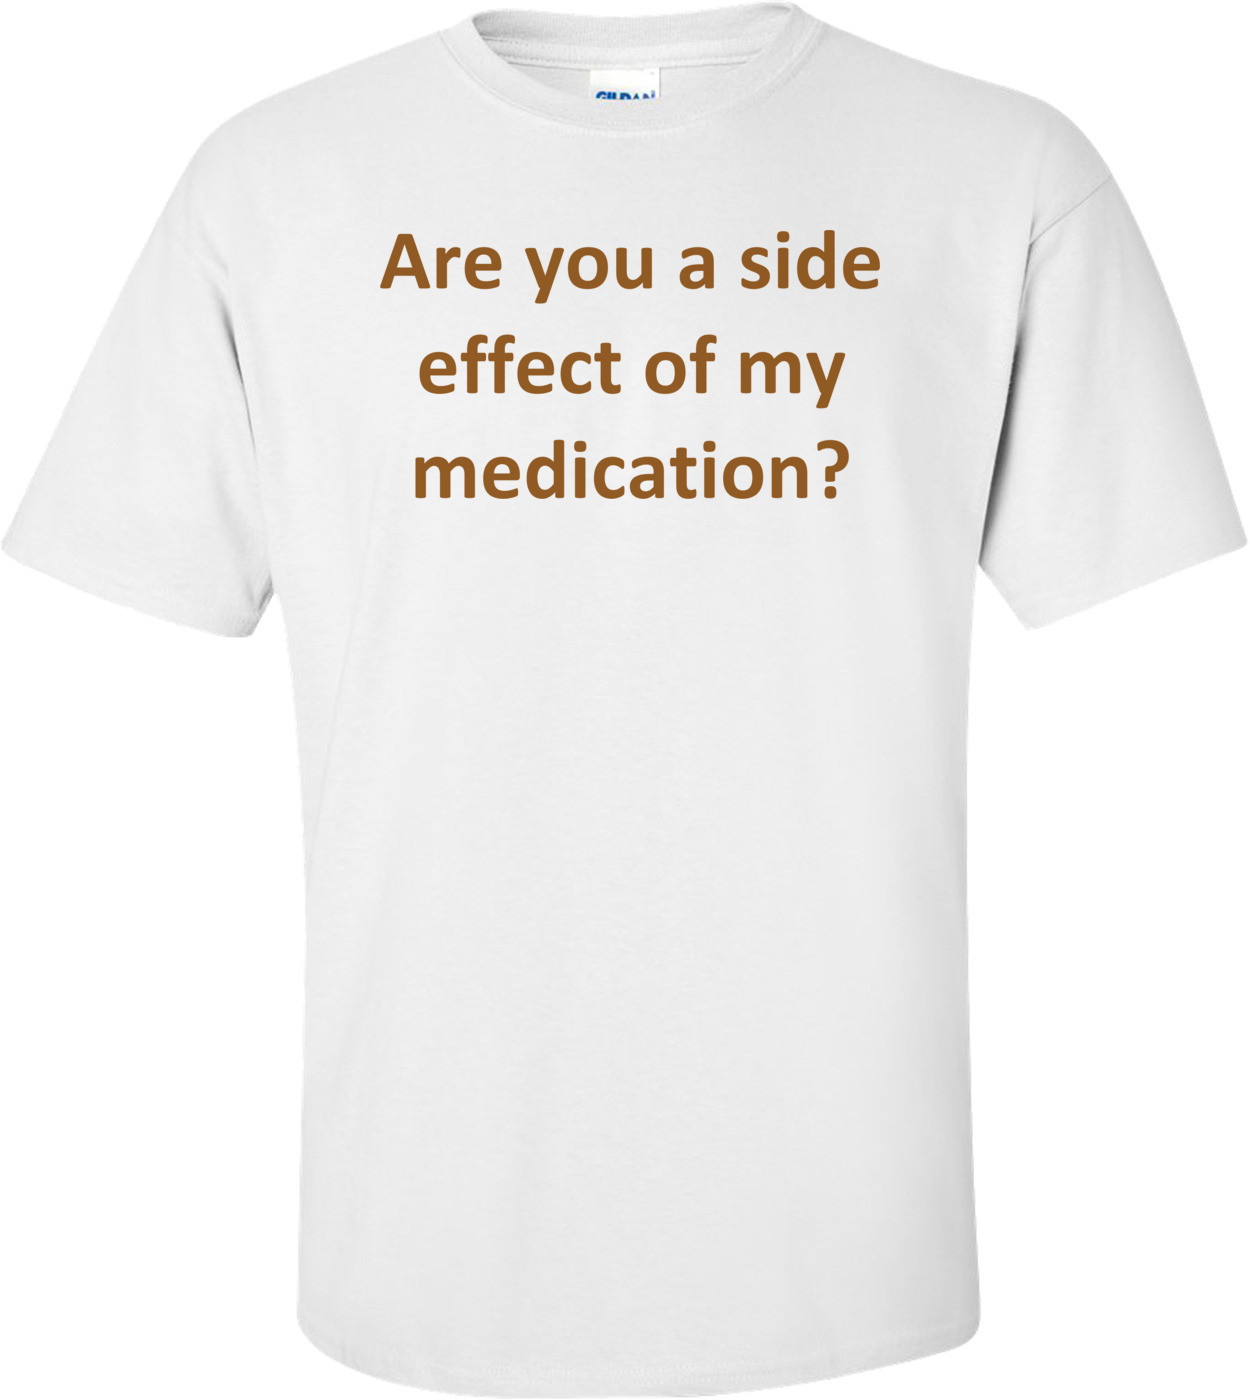 Are you a side effect of my medication? Shirt